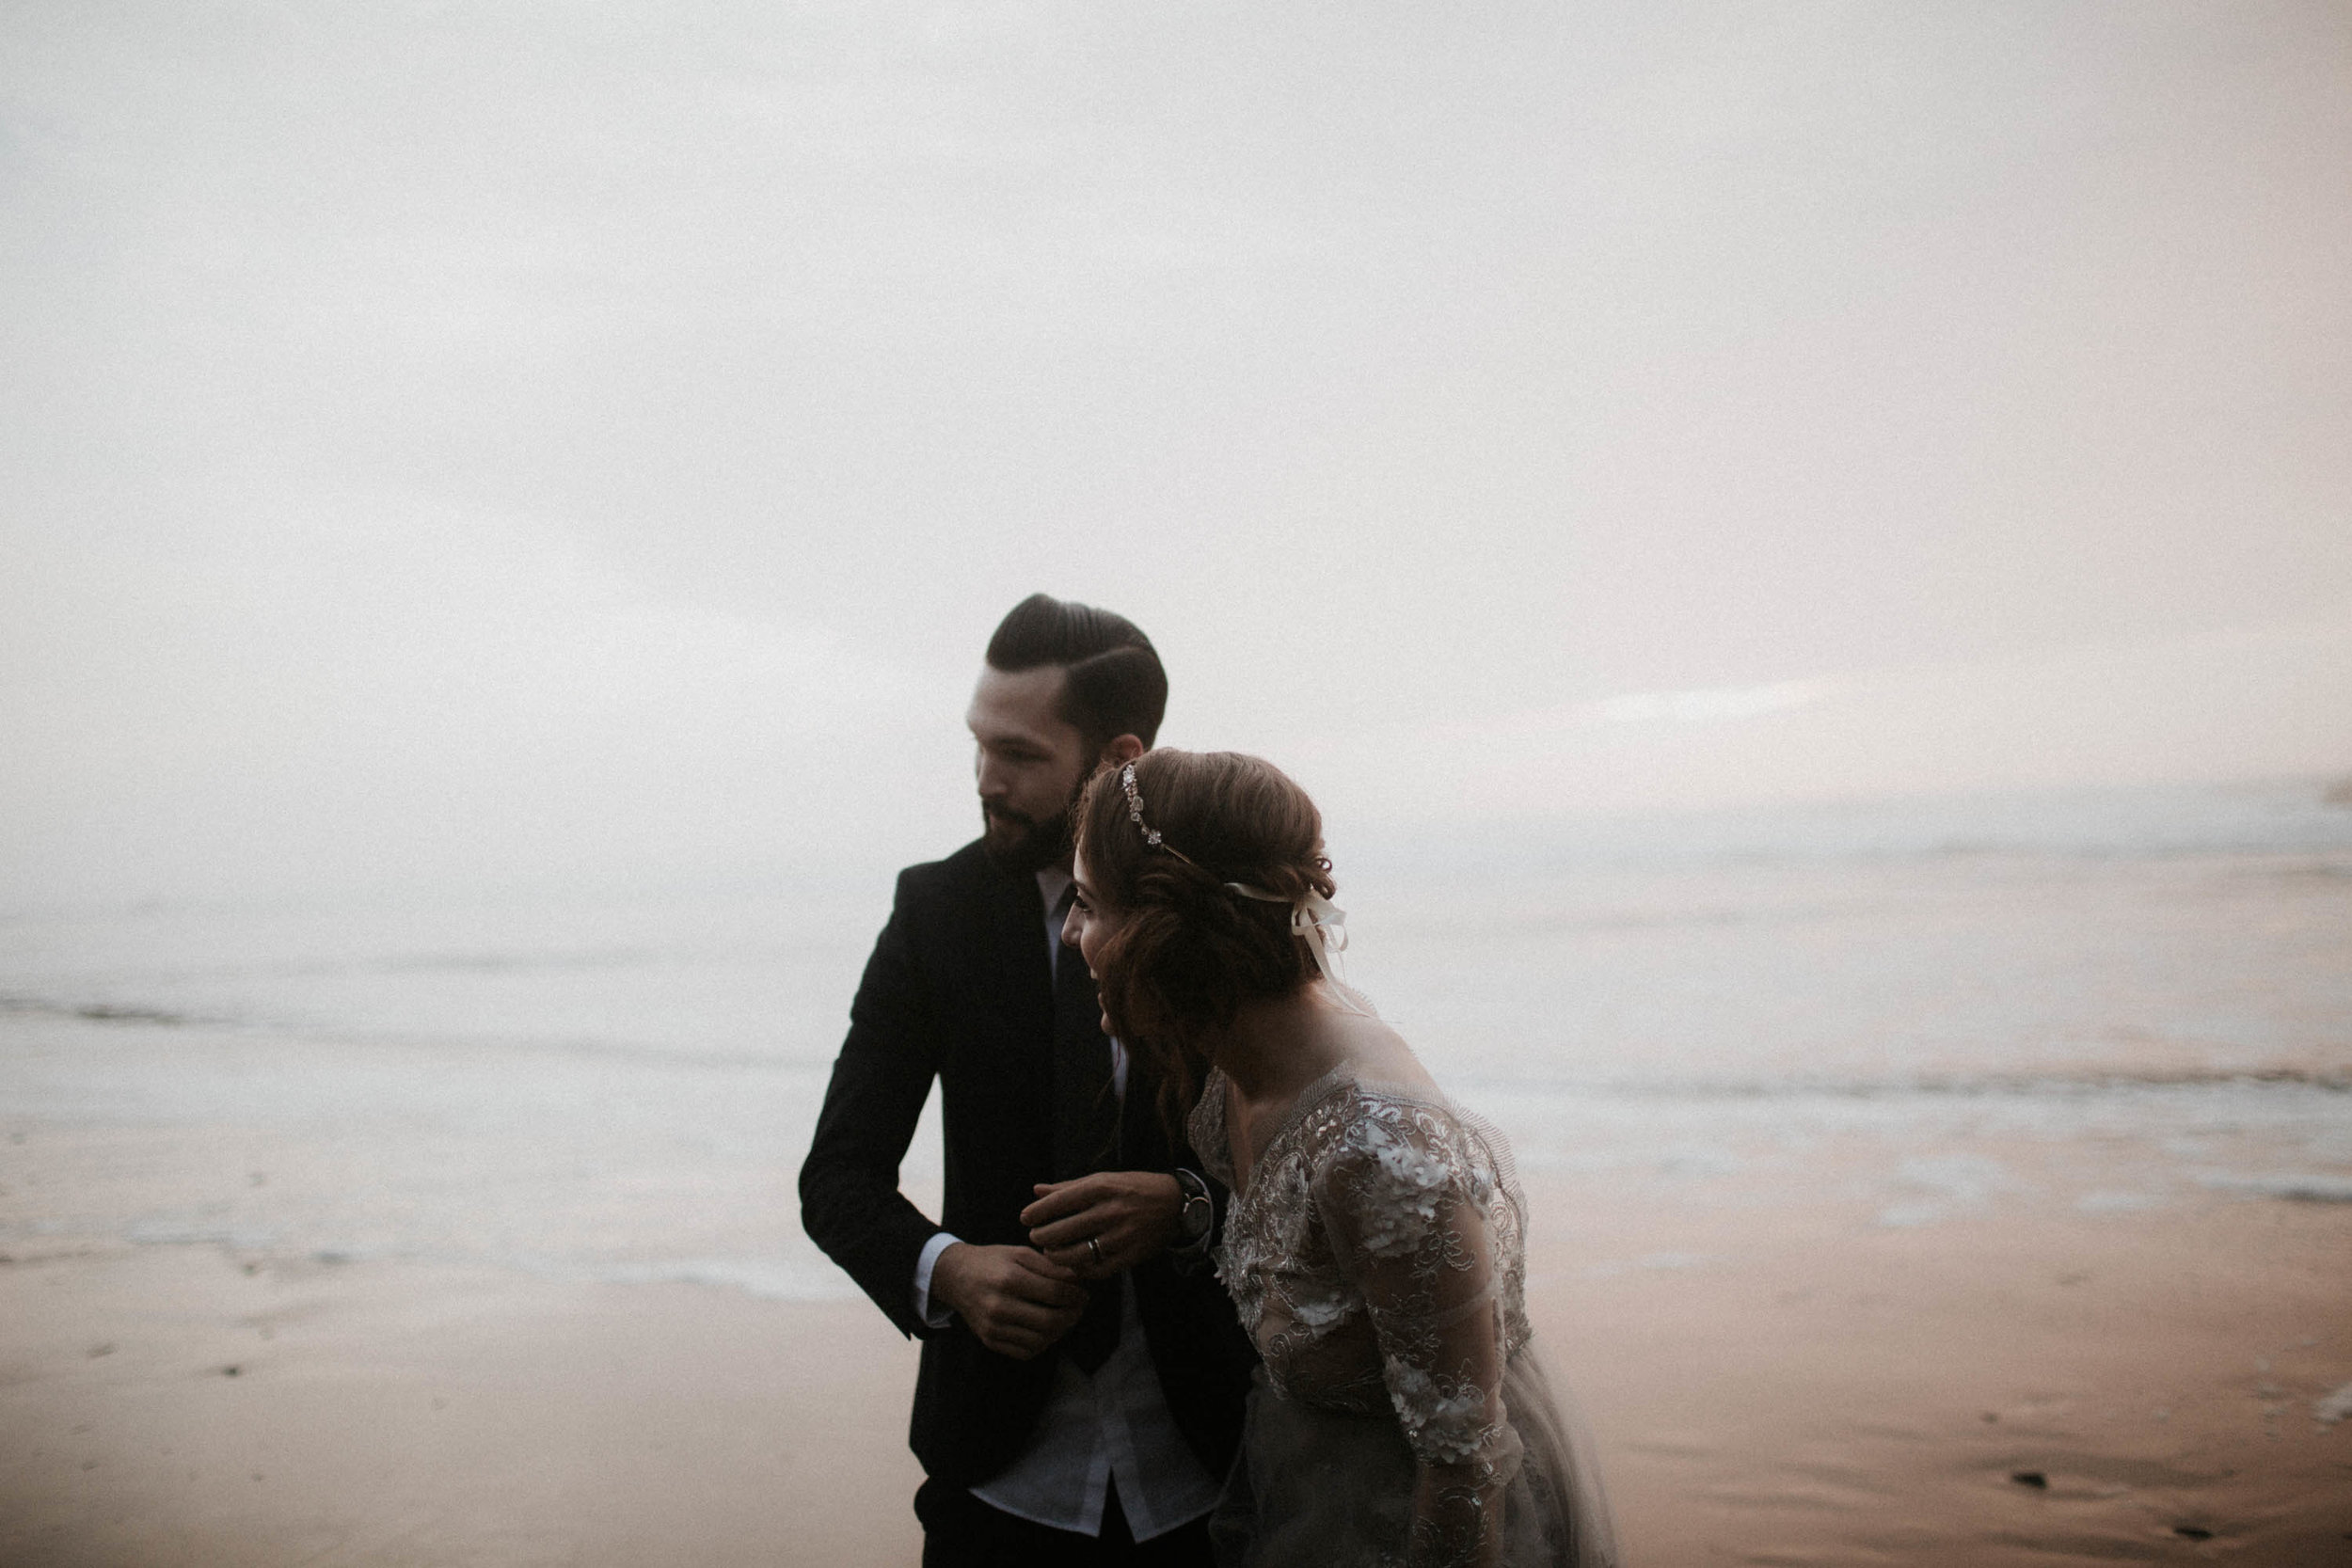 canonbeach_elopment_weddingphotographer-73.jpg